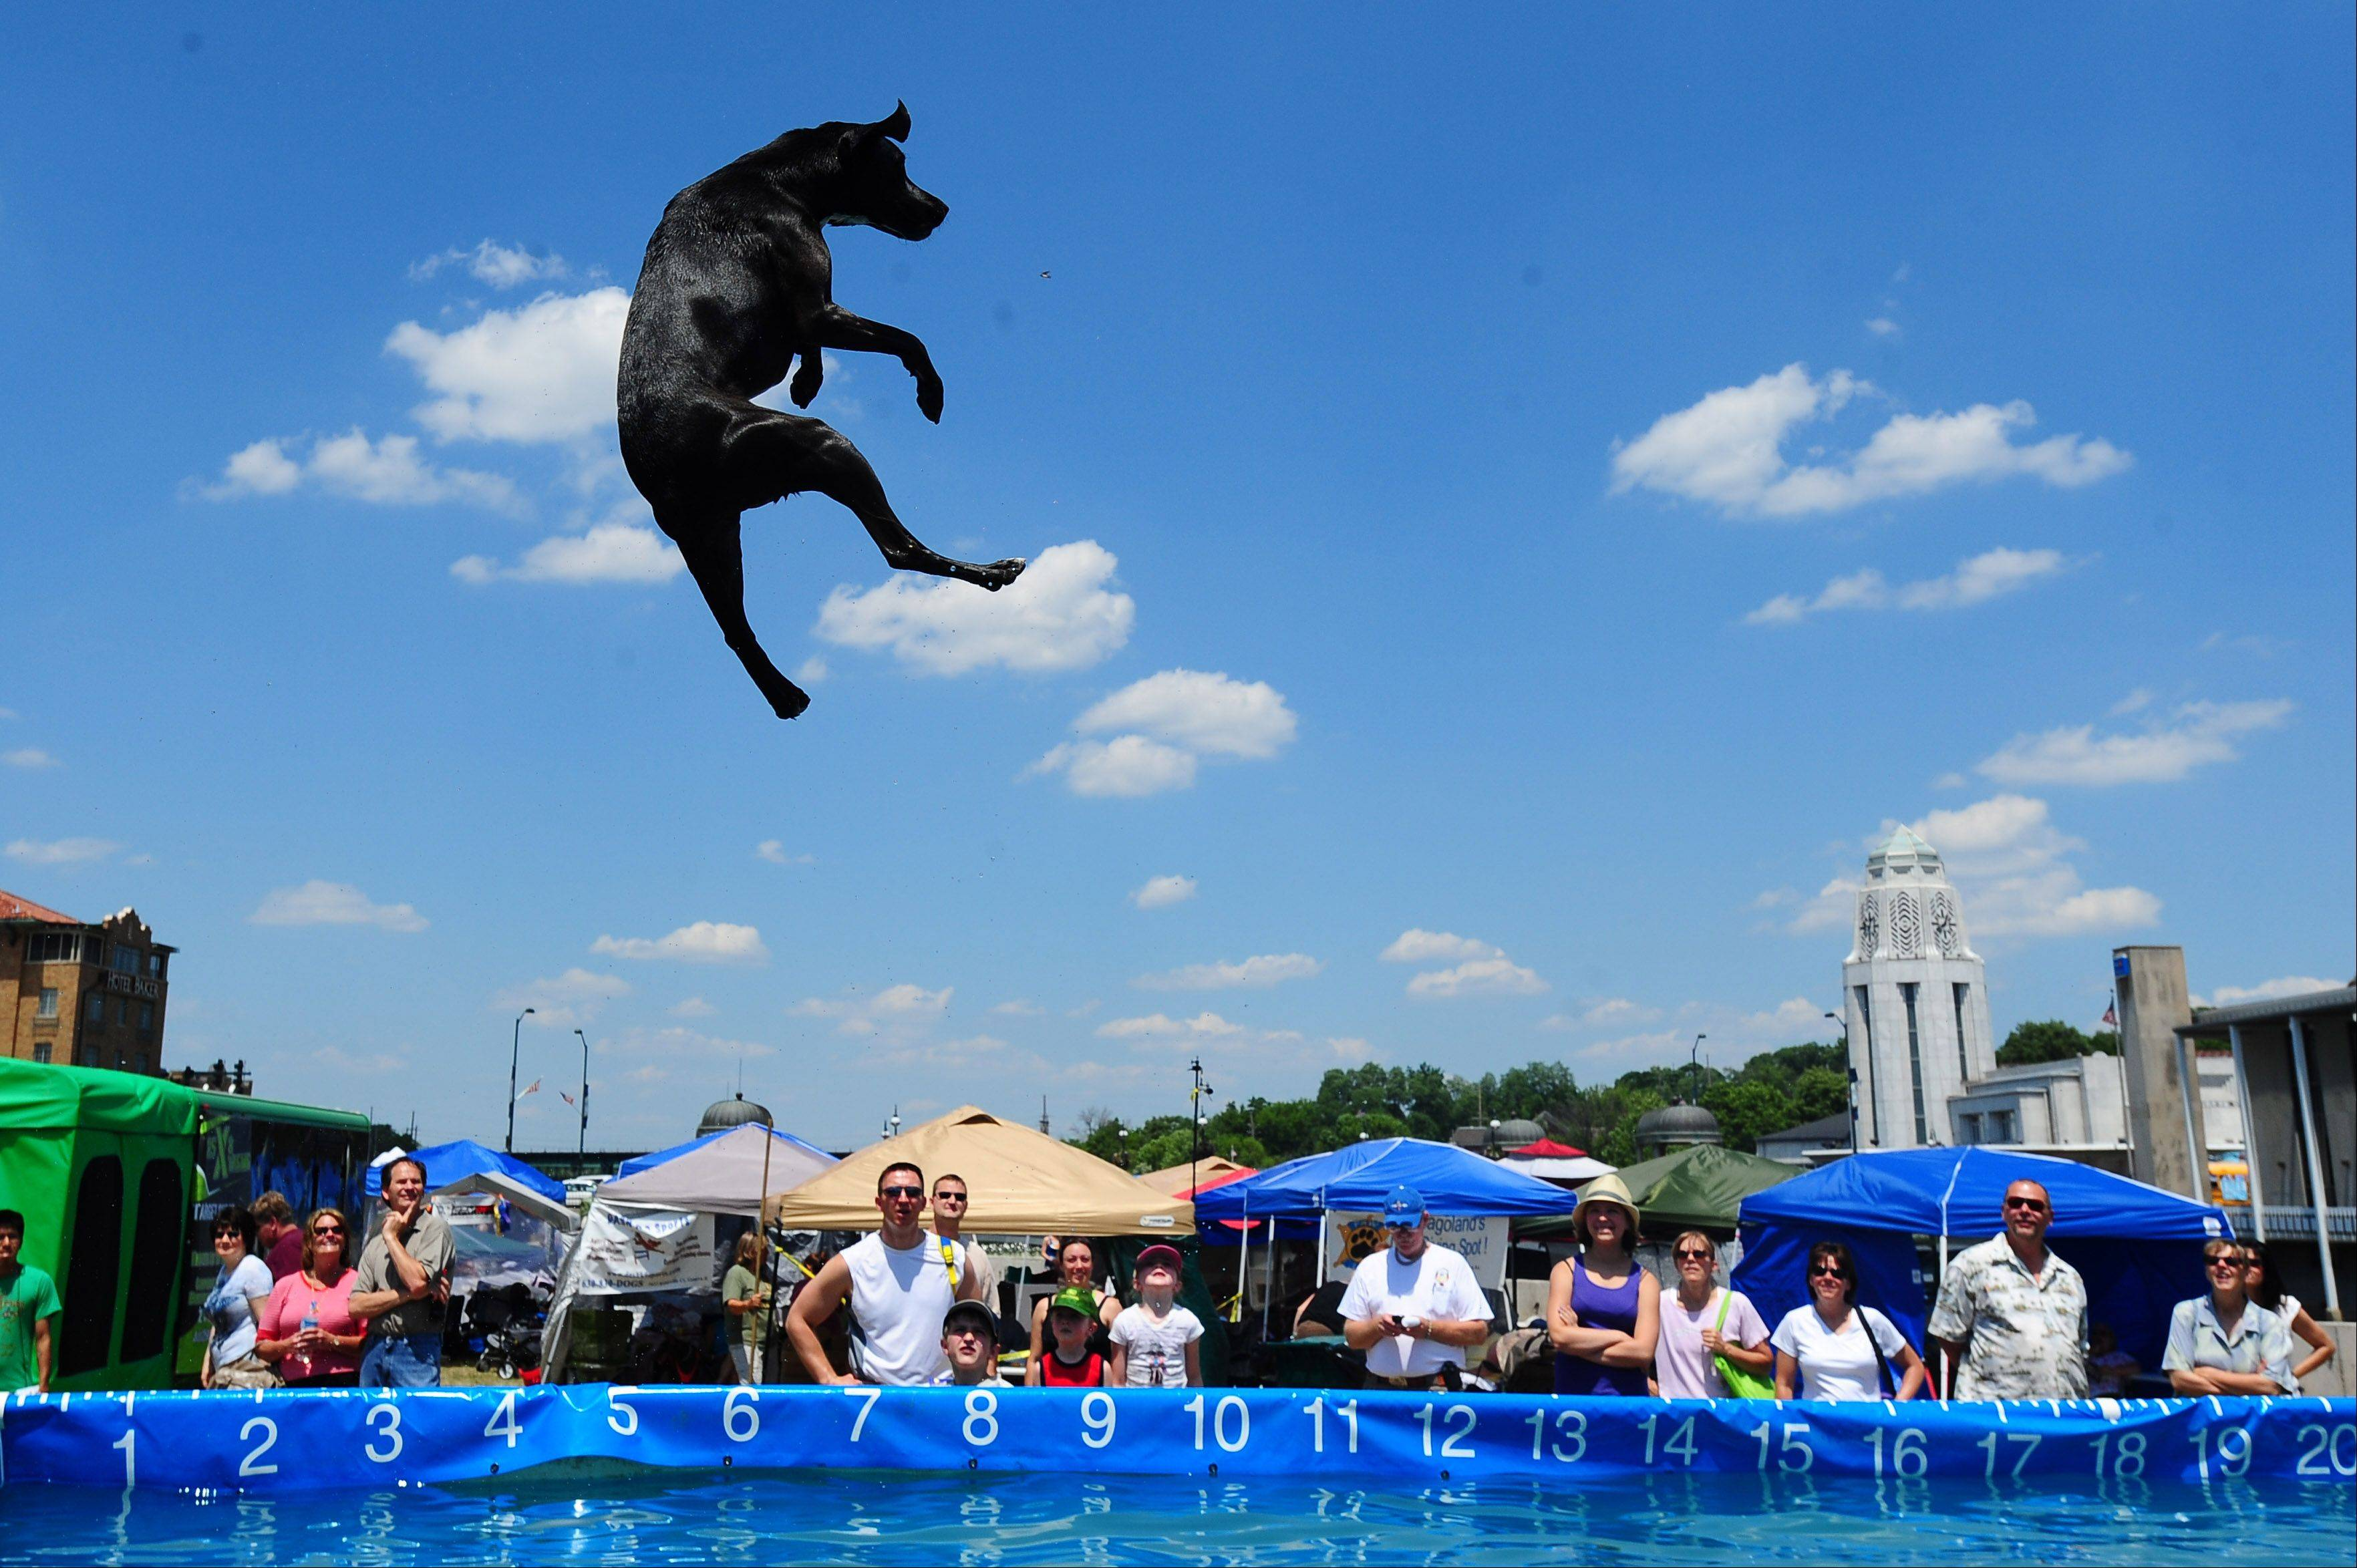 Guinness leaps off a dock after his dog toy in front of spectators during the Pride of the Fox's 30th annual RiverFest on Sunday.